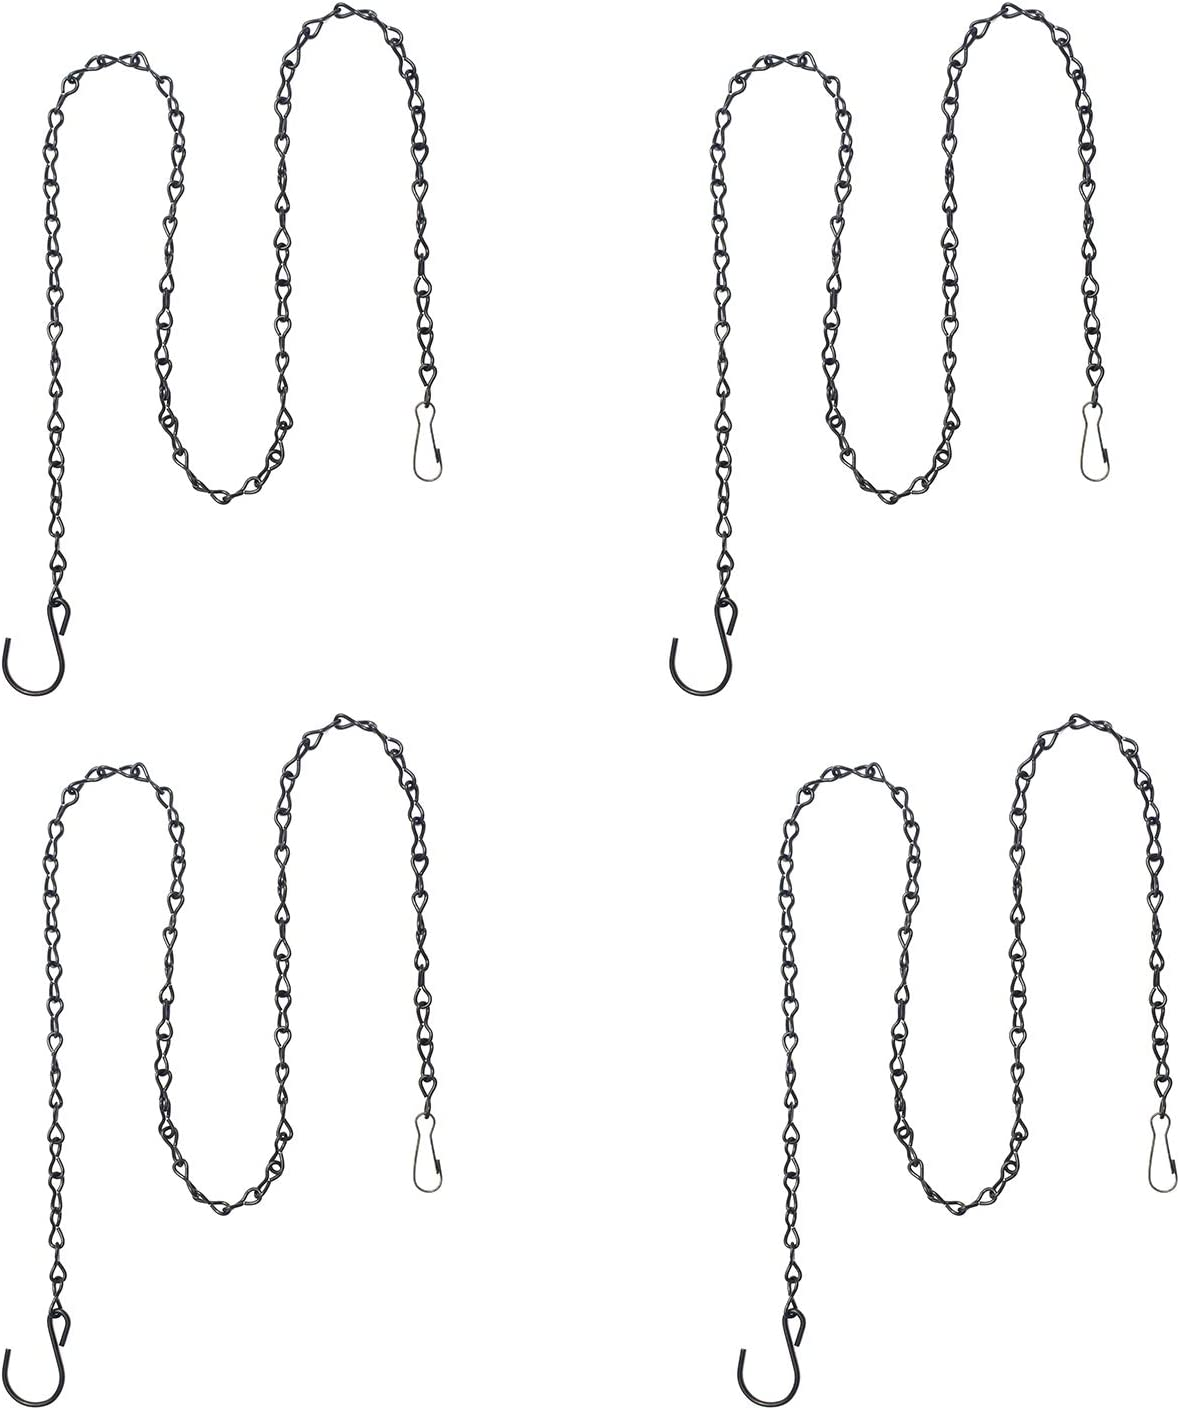 4 Pack 35 Inches Decorative Hanging Chains Black Hook Chains Mental Chain Hanger for Bird Feeders,Planters,Lanterns,Wind Chimes,Billboards, Chalkboards and More